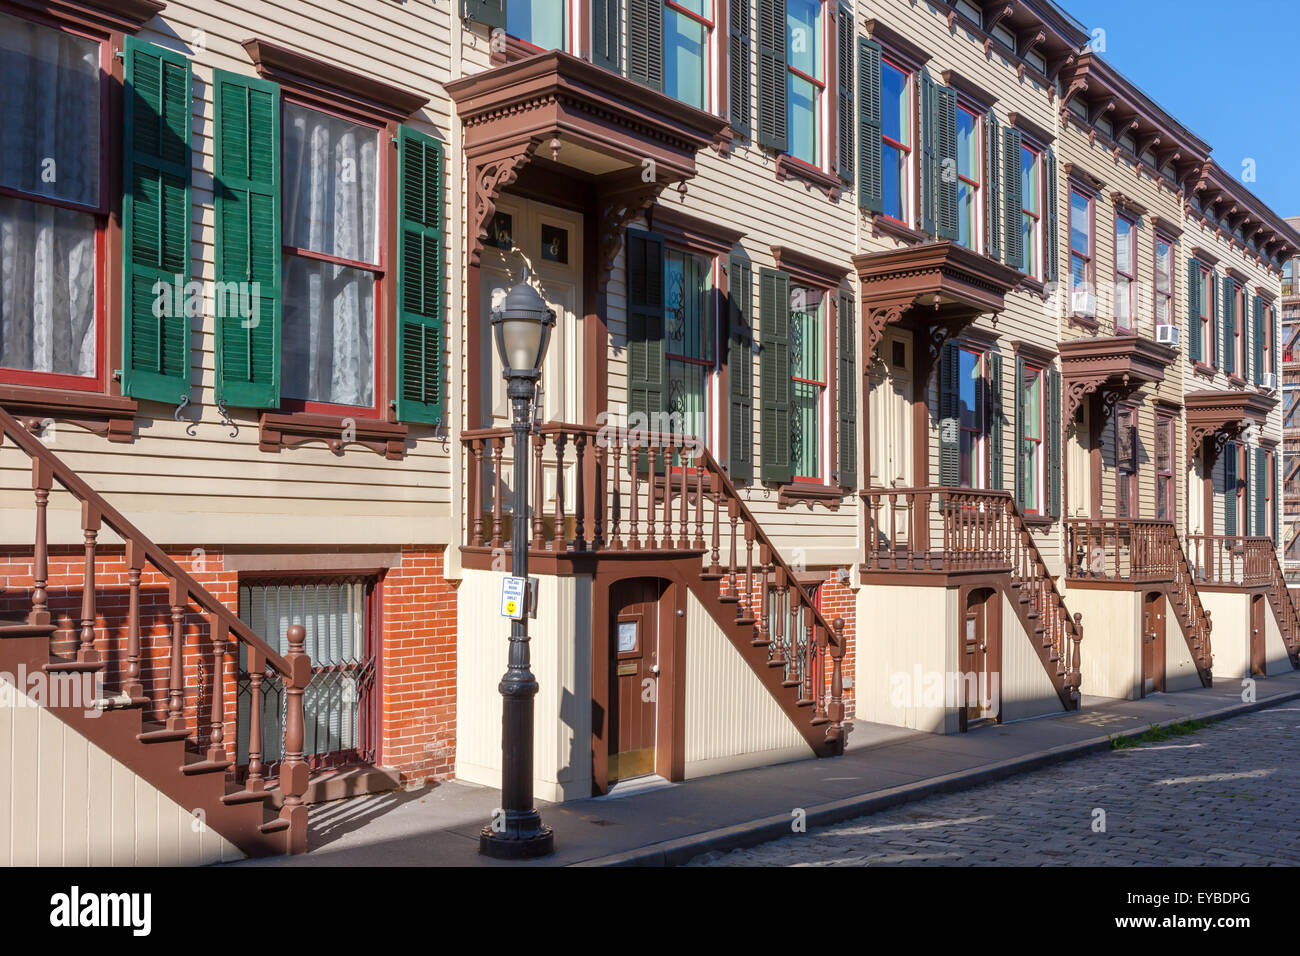 The historic Sylvan Terrace rowhouses in the Jumel Terrace Historic District in Washington Heights in New York City. - Stock Image